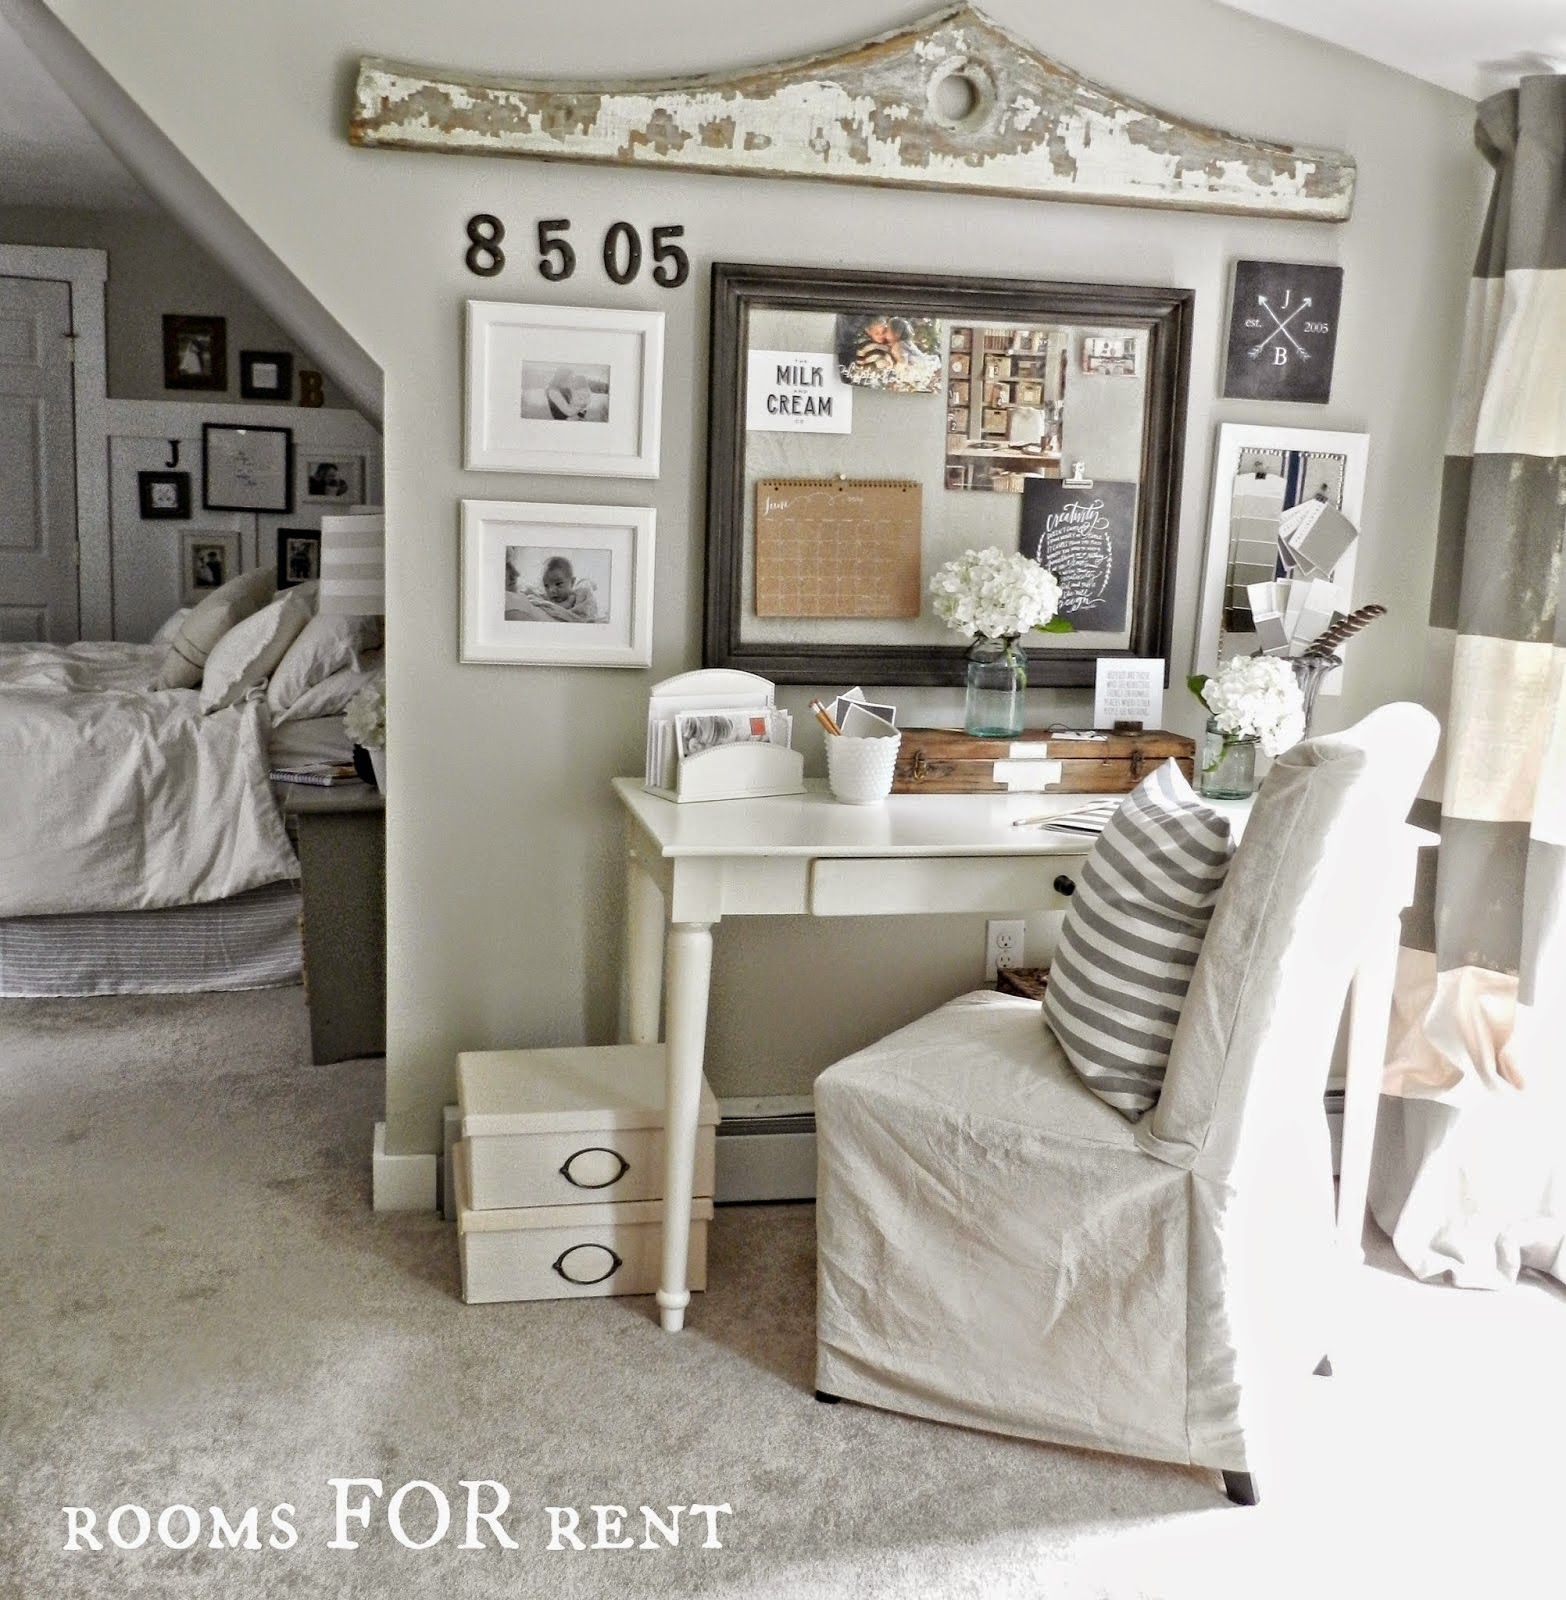 Bedroom Office: Style House-Rooms For Rent